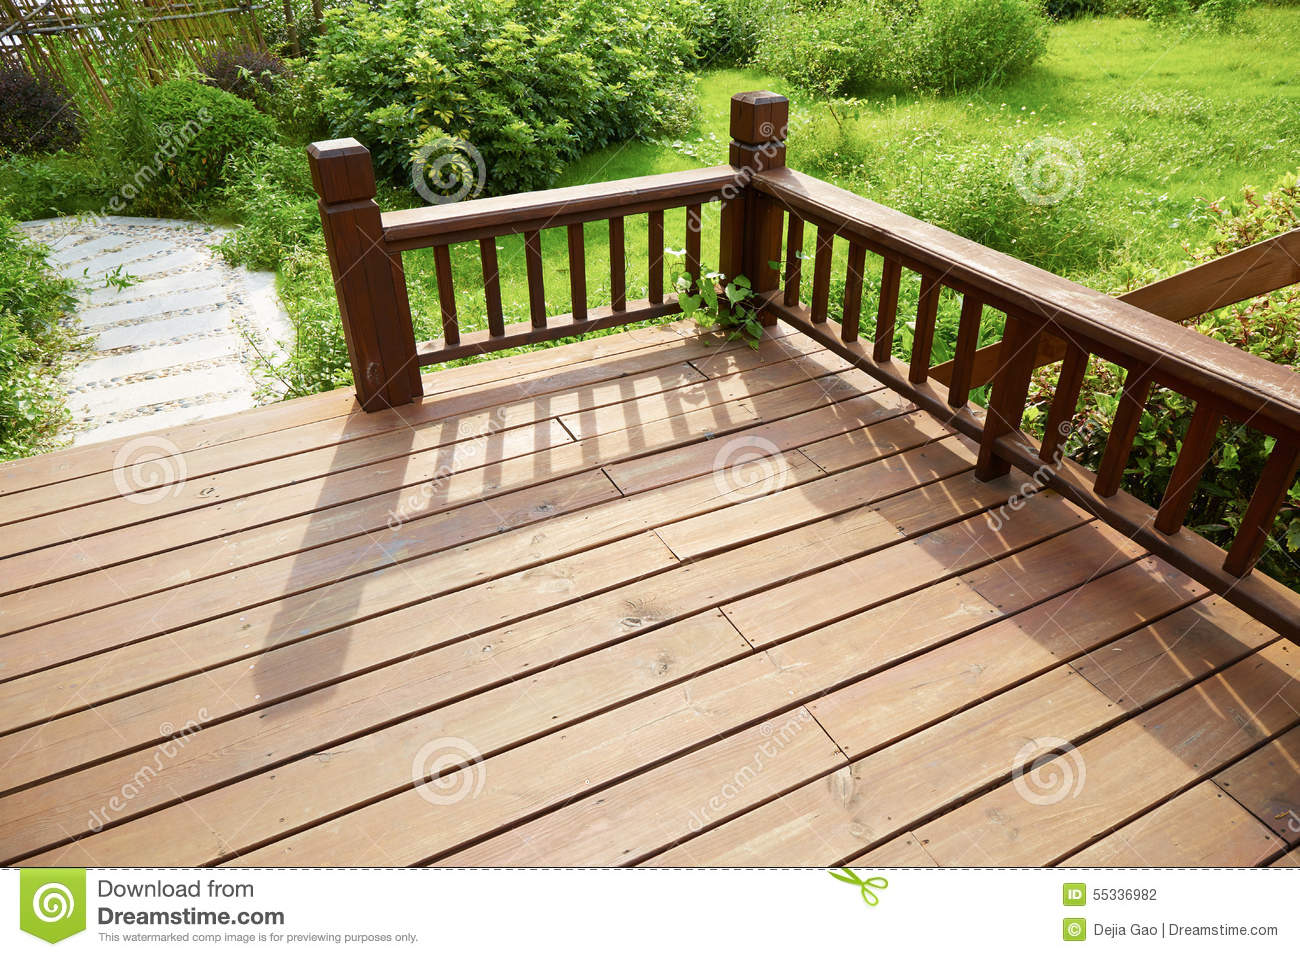 House wooden deck wood outdoor backyard patio in garden for Outdoor patio landscaping